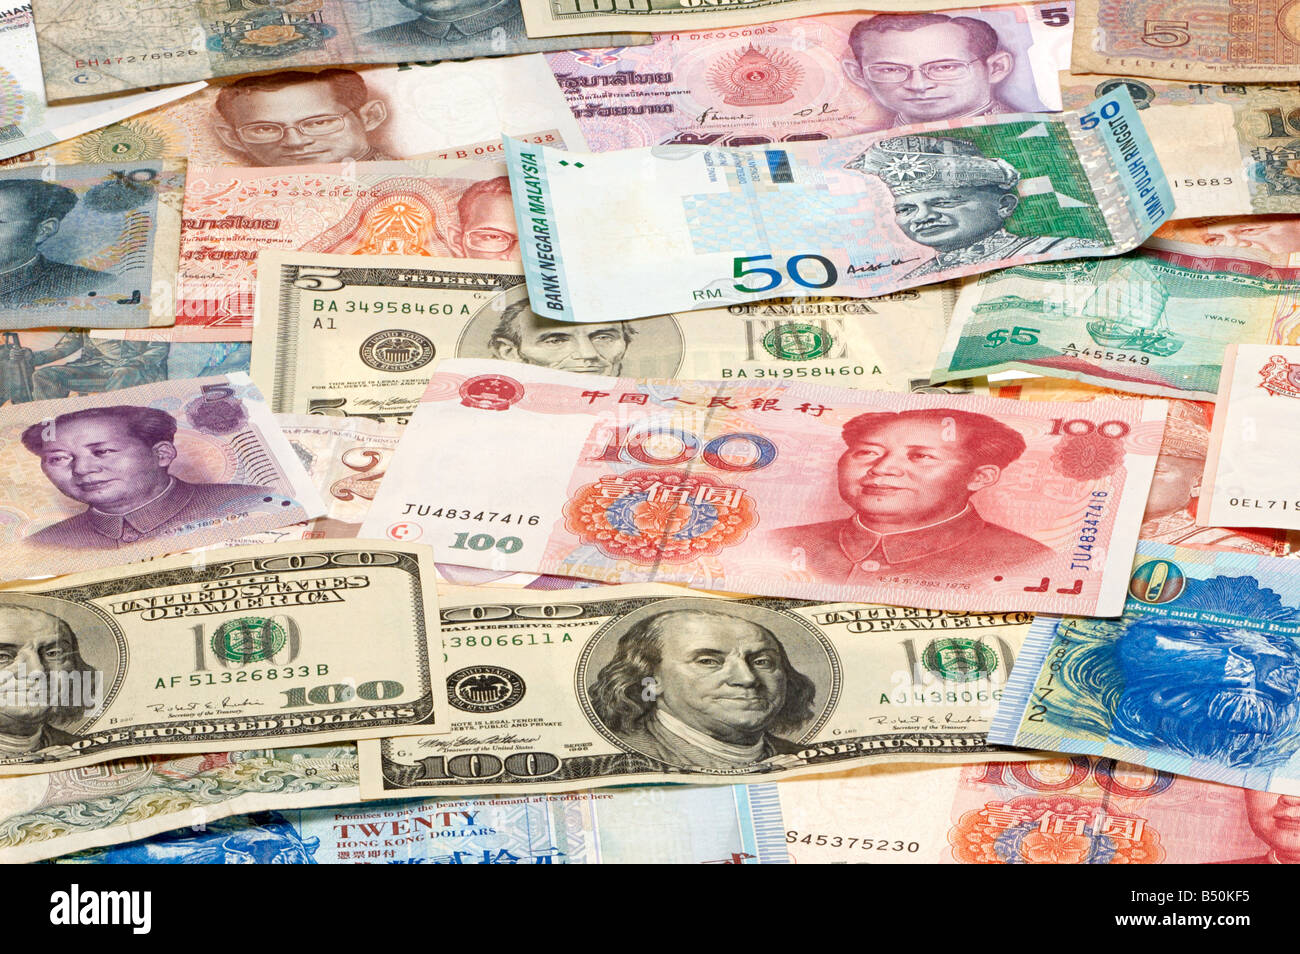 Paper money from various countries such as the USA, China, Malaysia, Singapore, Thailand - Stock Image